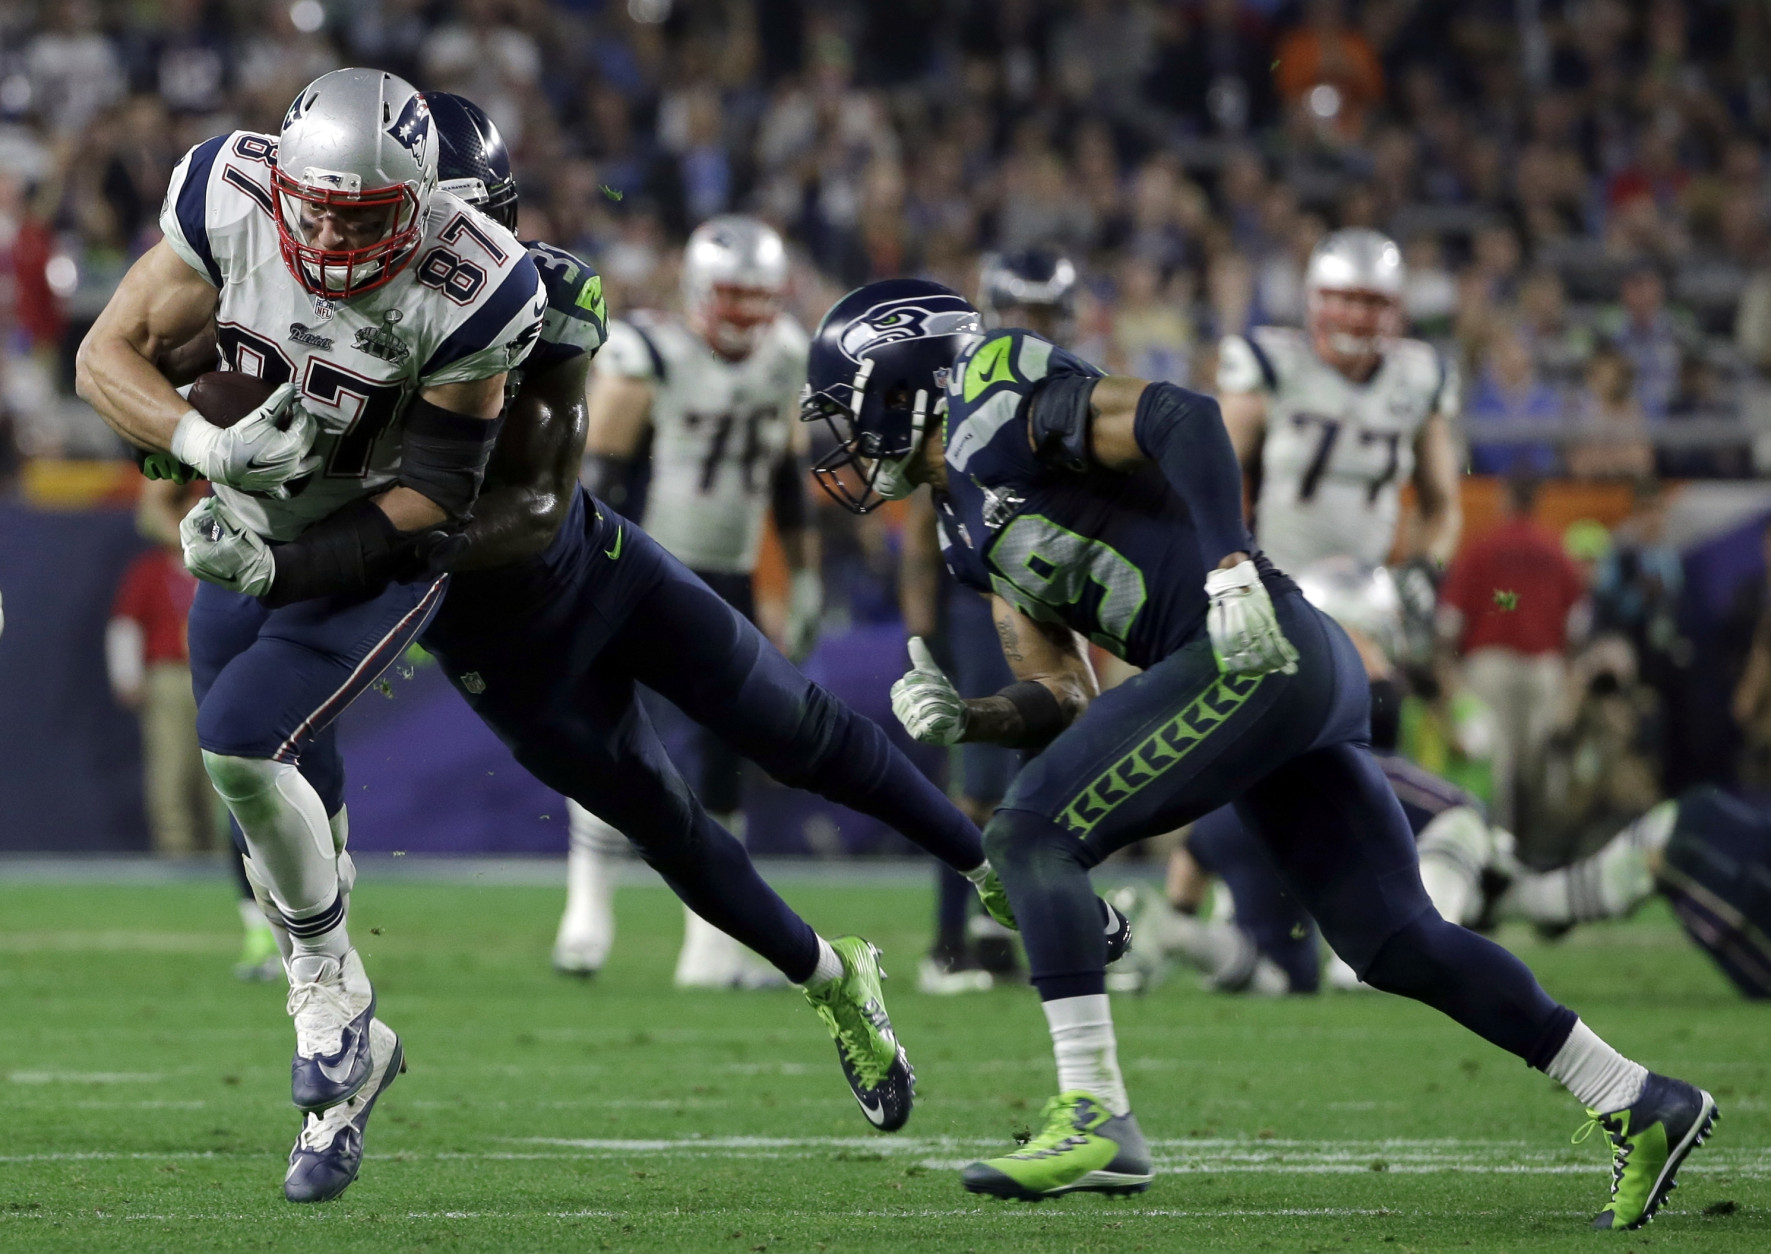 New England Patriots tight end Rob Gronkowski (87) is tackled by Seattle Seahawks strong safety Kam Chancellor (31) during the second half of NFL Super Bowl XLIX football game Sunday, Feb. 1, 2015, in Glendale, Ariz. (AP Photo/Matt Slocum)